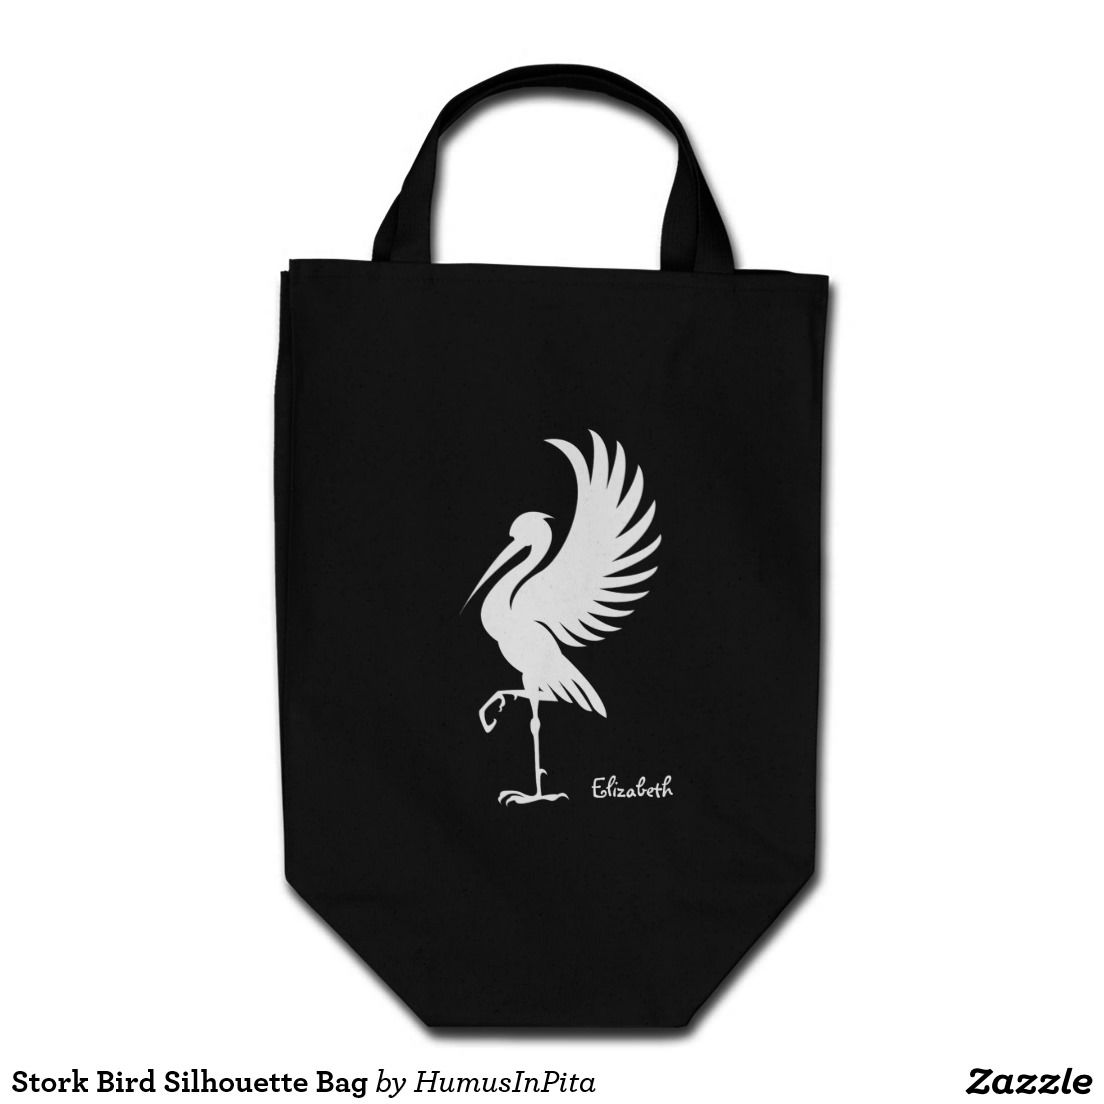 Stork Bird Silhouette Bag